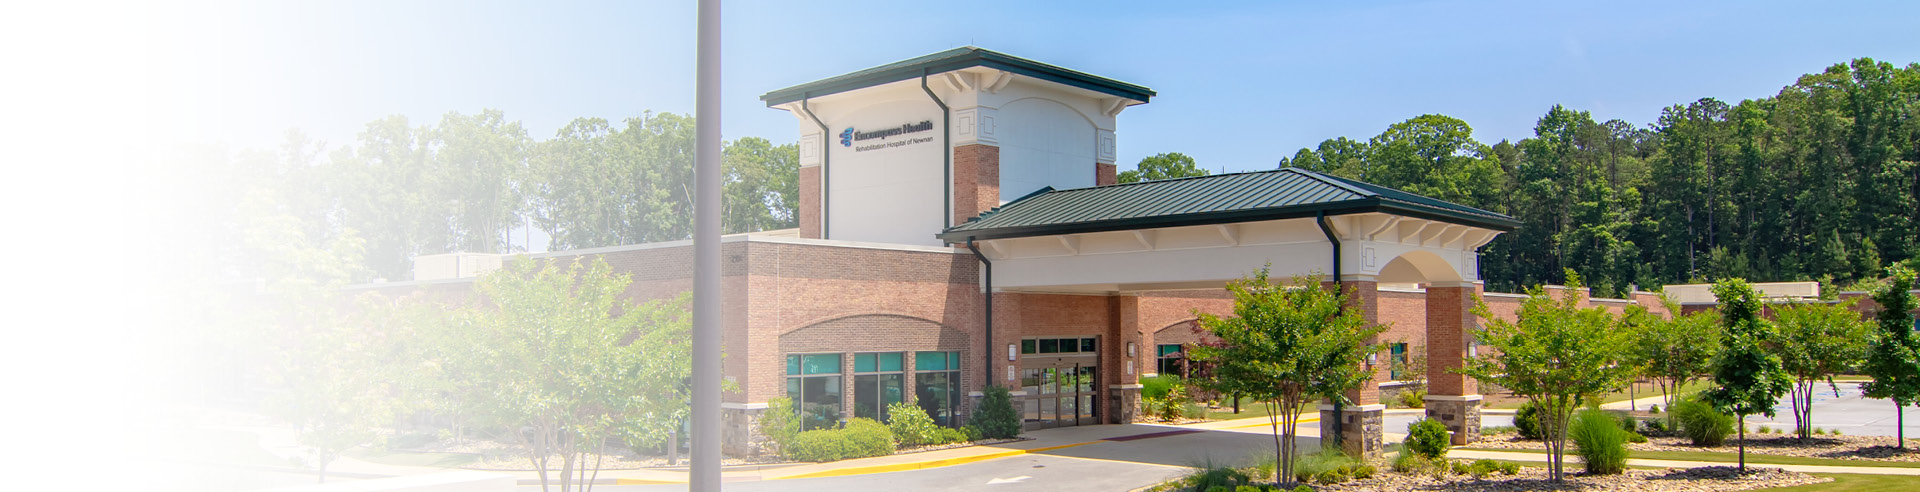 Encompass Health Rehabilitation Hospital Of Newnan